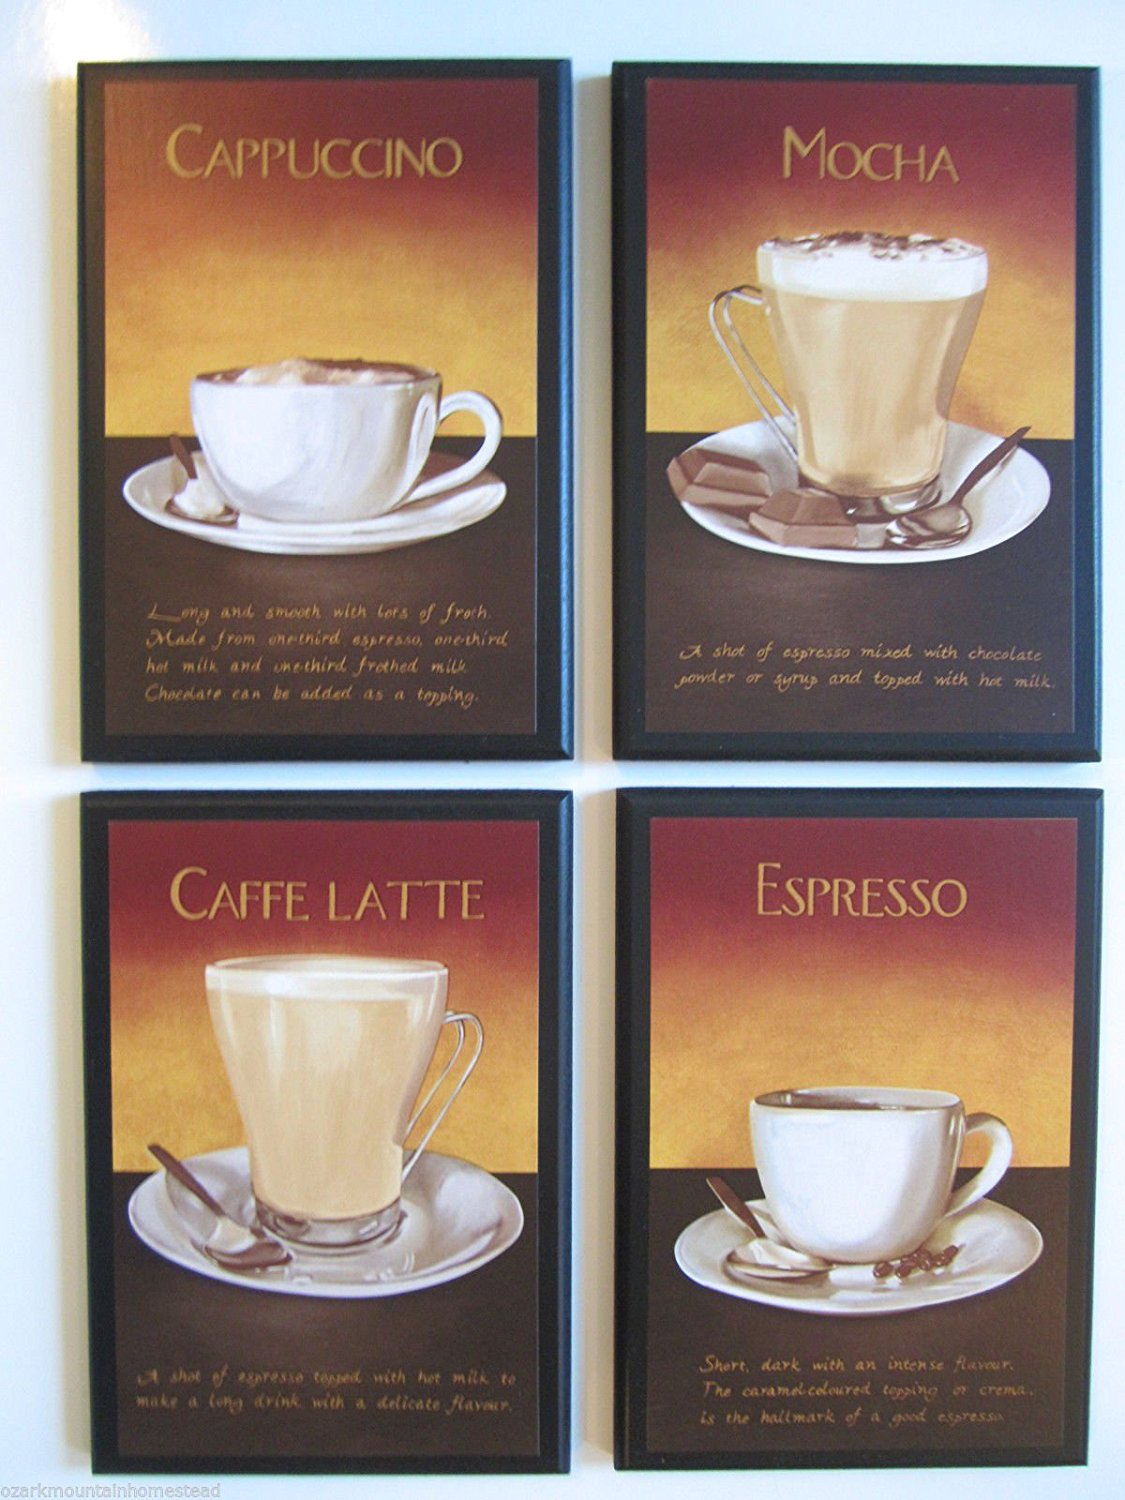 Cheap Wall Decor Coffee  find Wall Decor Coffee deals on line at     Get Quotations      Coffee   Kitchen Wall Decor Plaques  Mocha Cappuccino  Latte Espresso  Wall Decor Signs